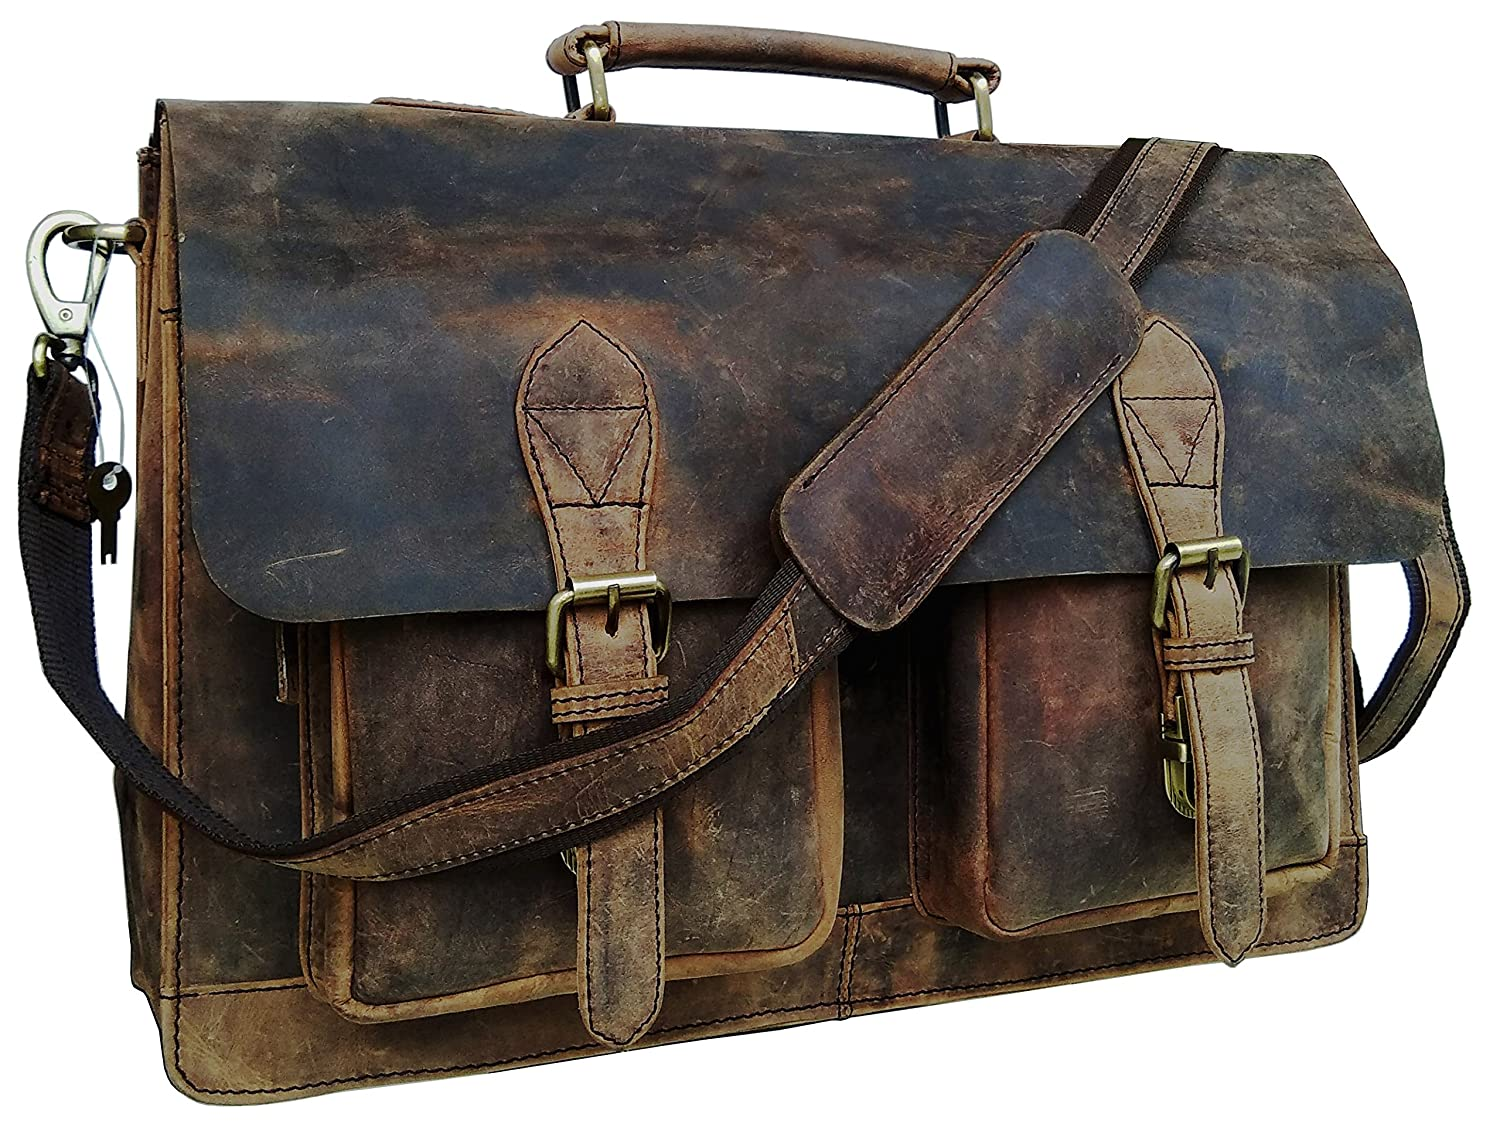 Cuero 15 Inch Retro Buffalo Hunter Leather Laptop Messenger Bag Office Briefcase College Bag LYSB01N1RW80H-OFFSUPPLIES